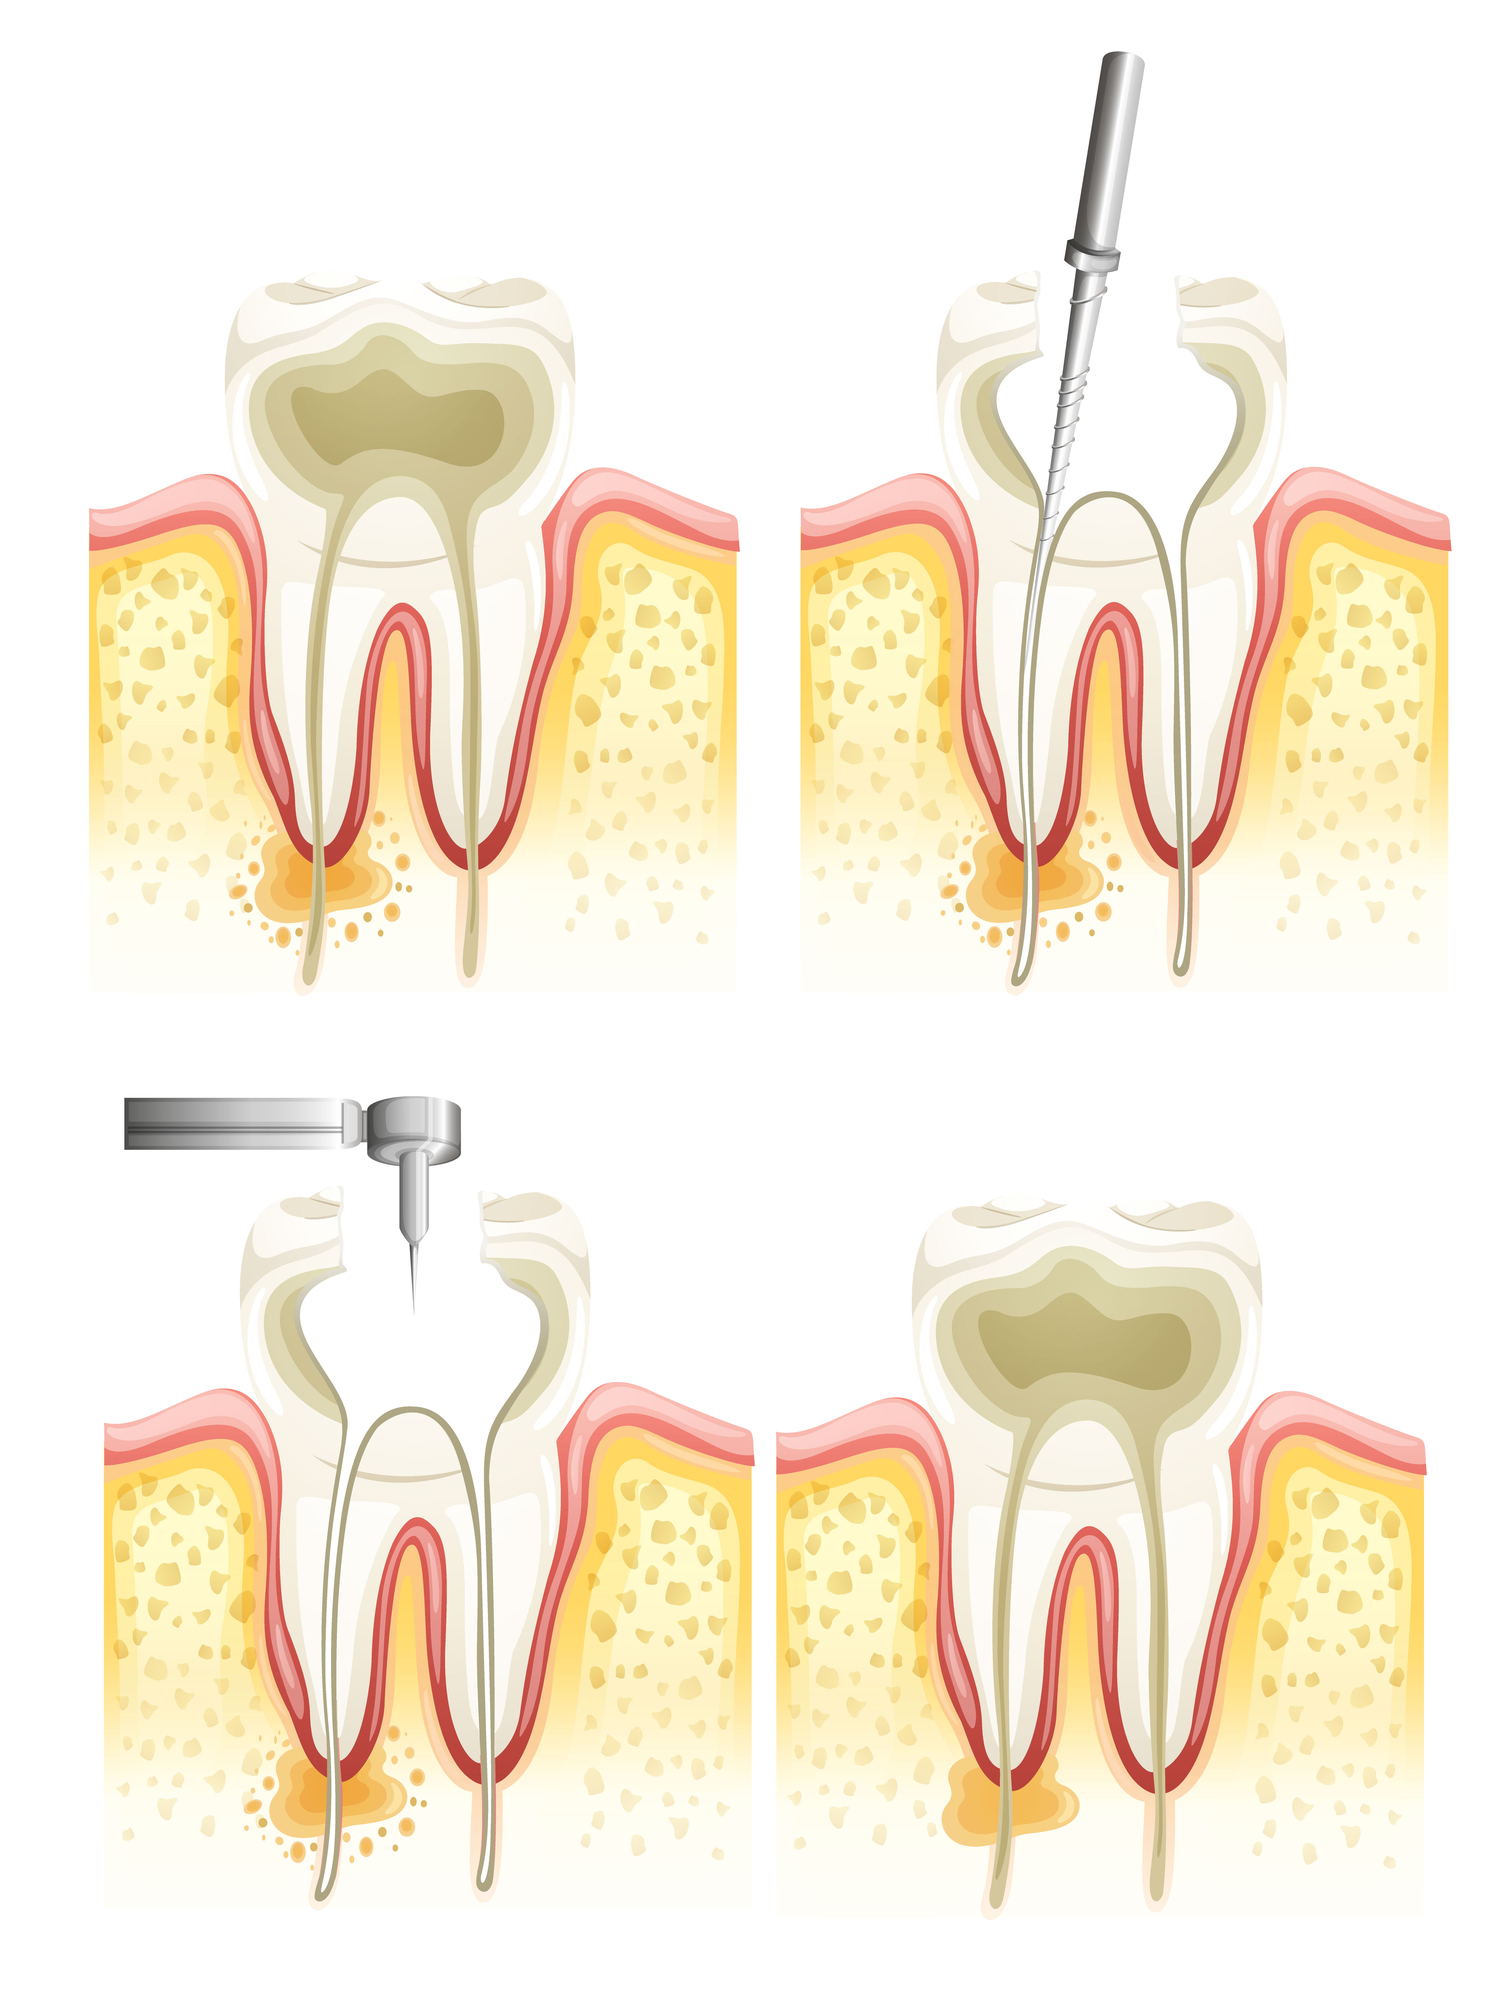 Who is the best dentist for a root canal in Doral?